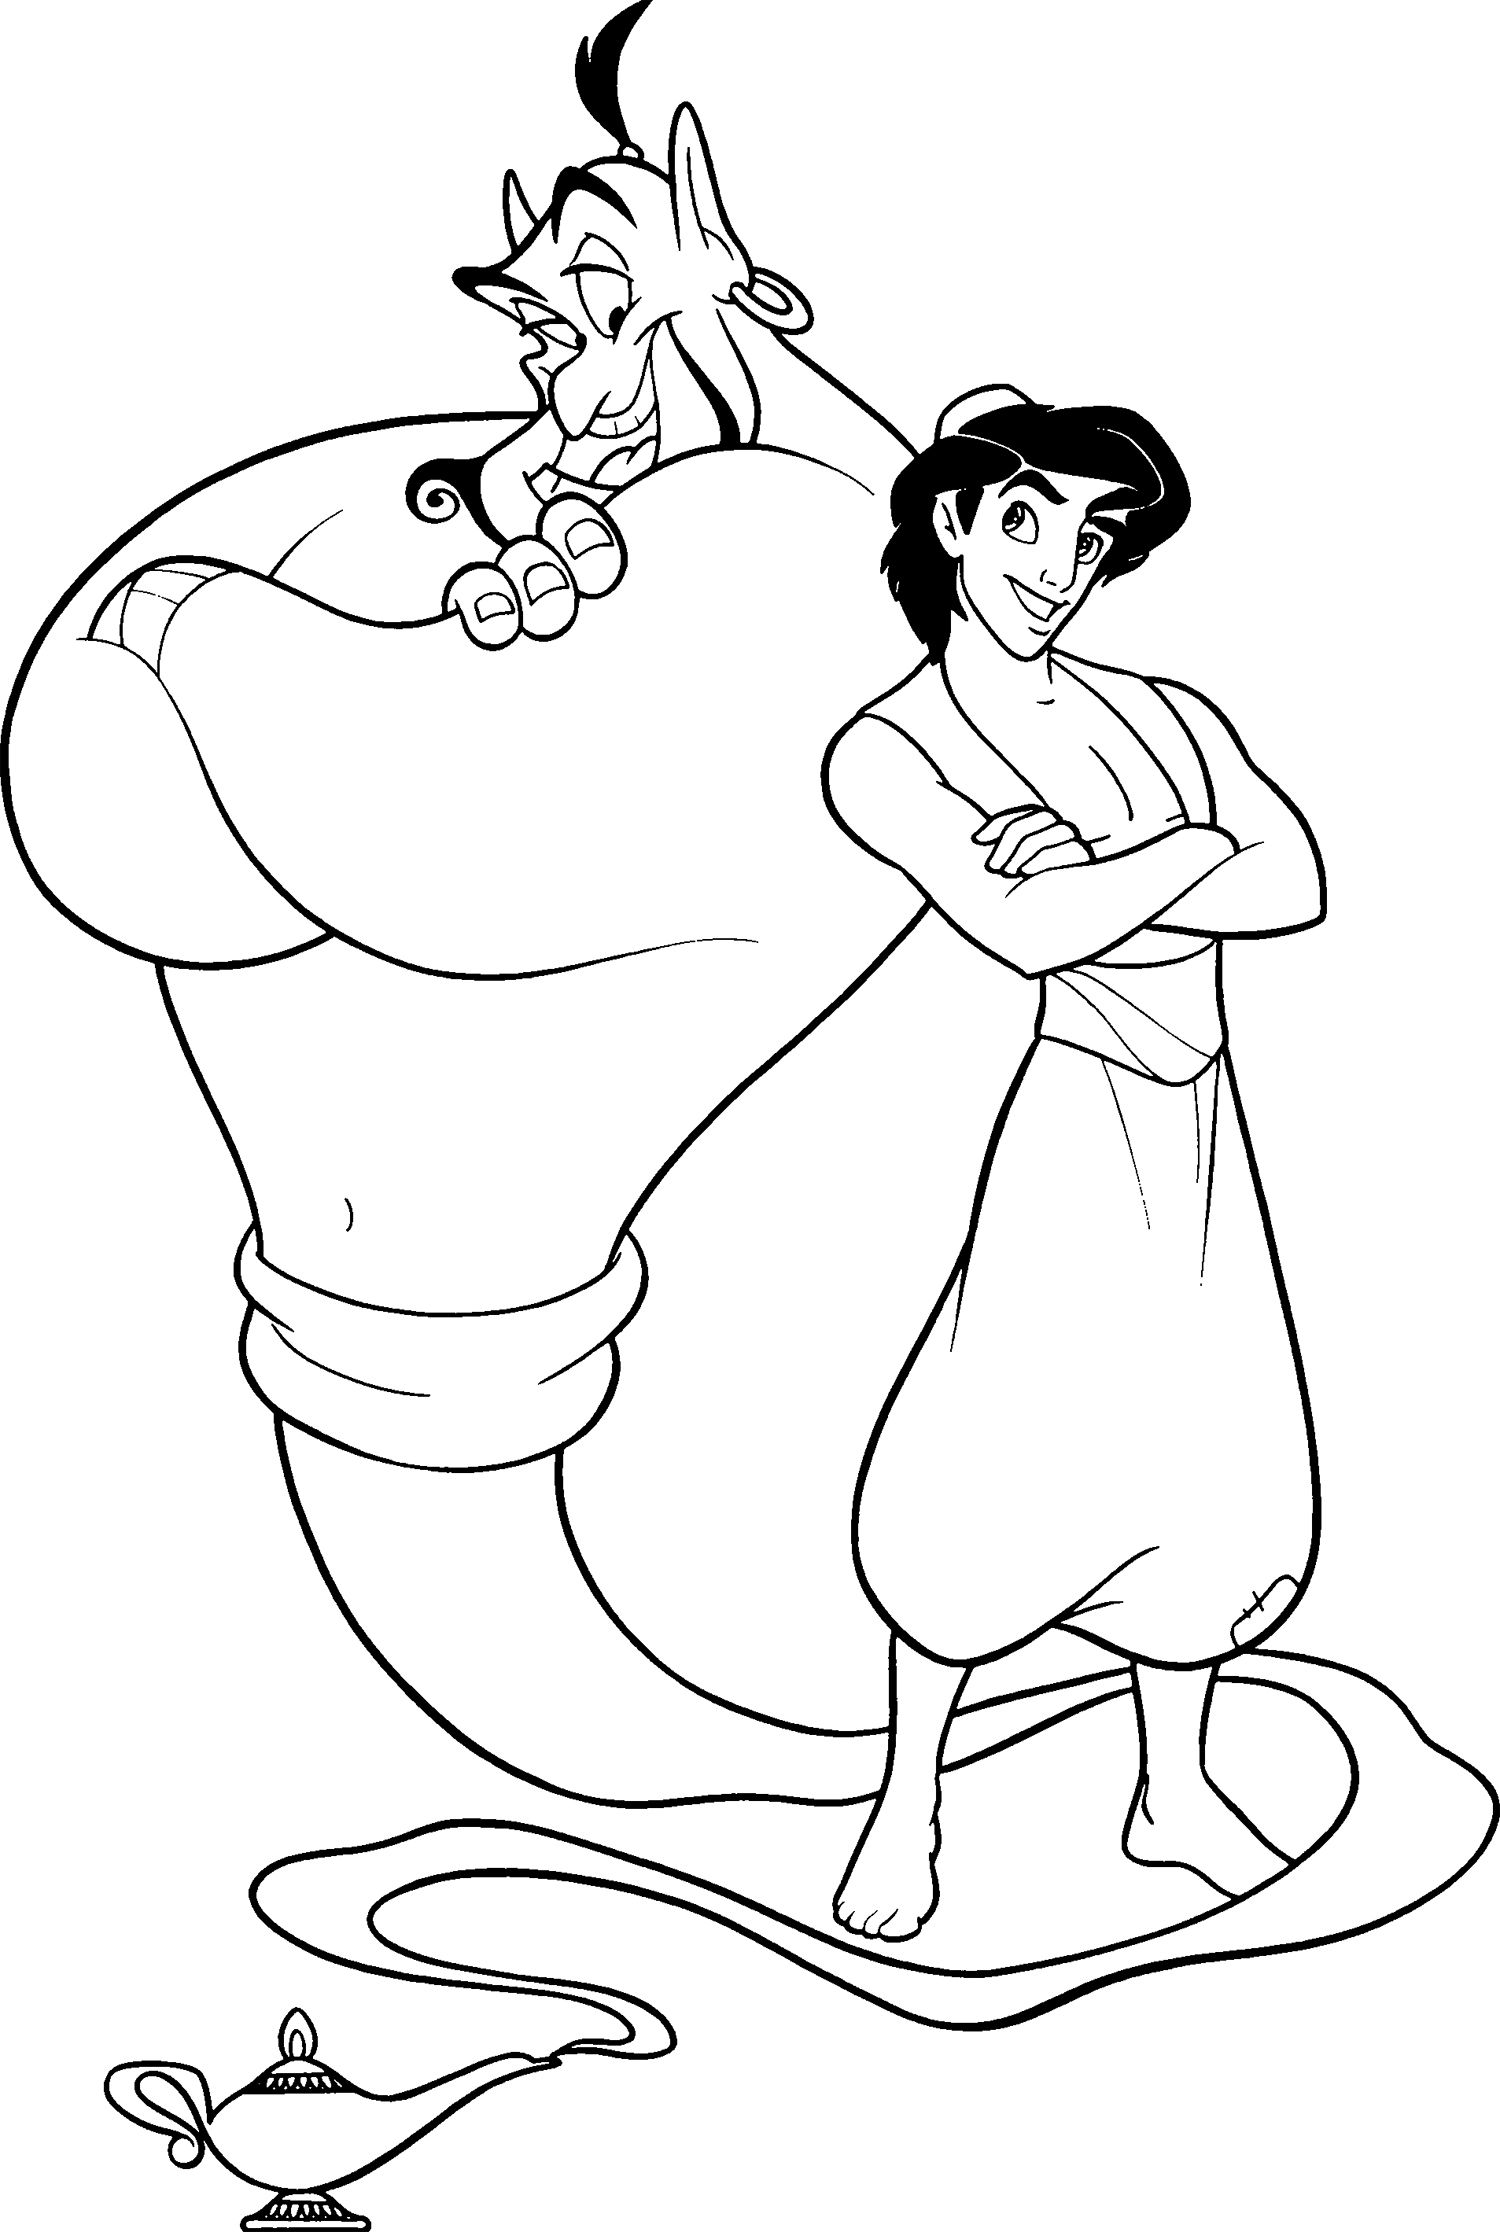 Aladdin Barbie coloring pages, Online coloring pages